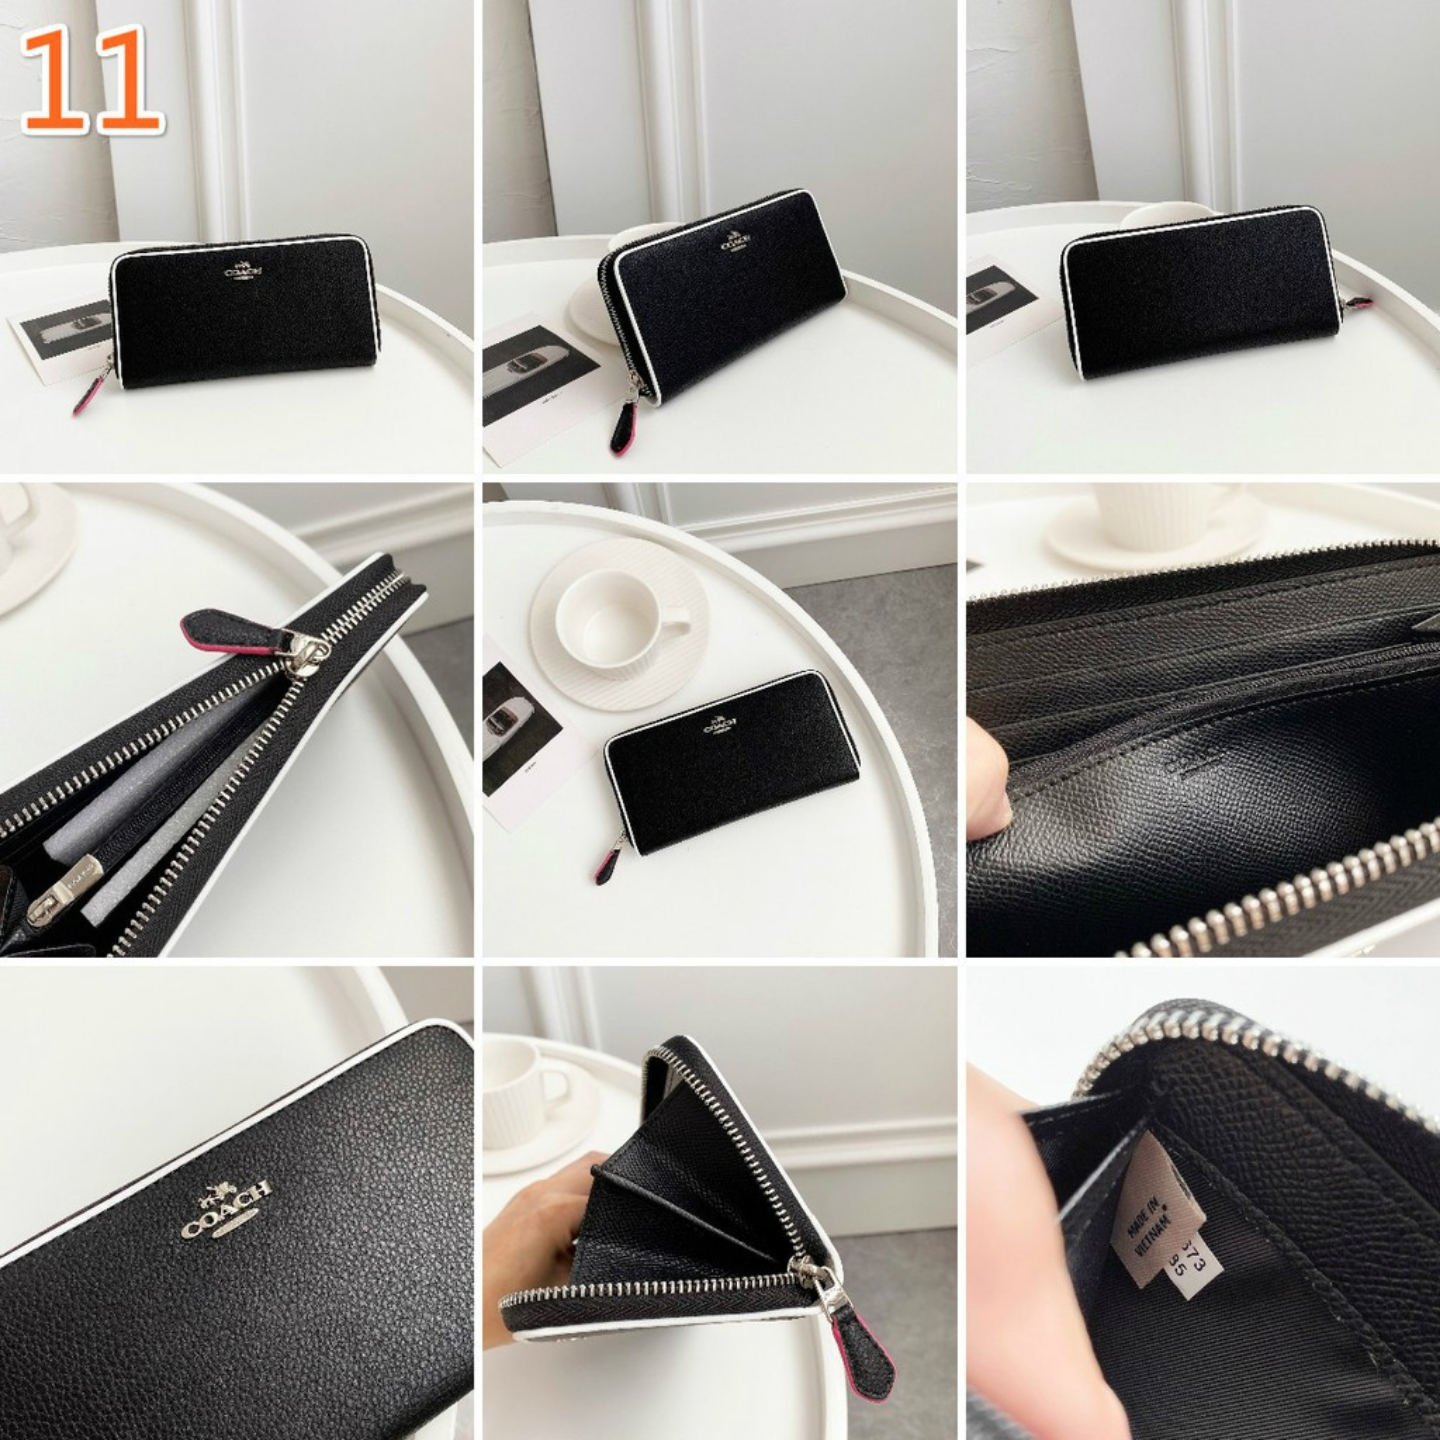 Flash Sale C long purse F76546 F98126 F29931 F91743 2857 F87927 F29380 F31350 F87926 F12585 Womens wallet